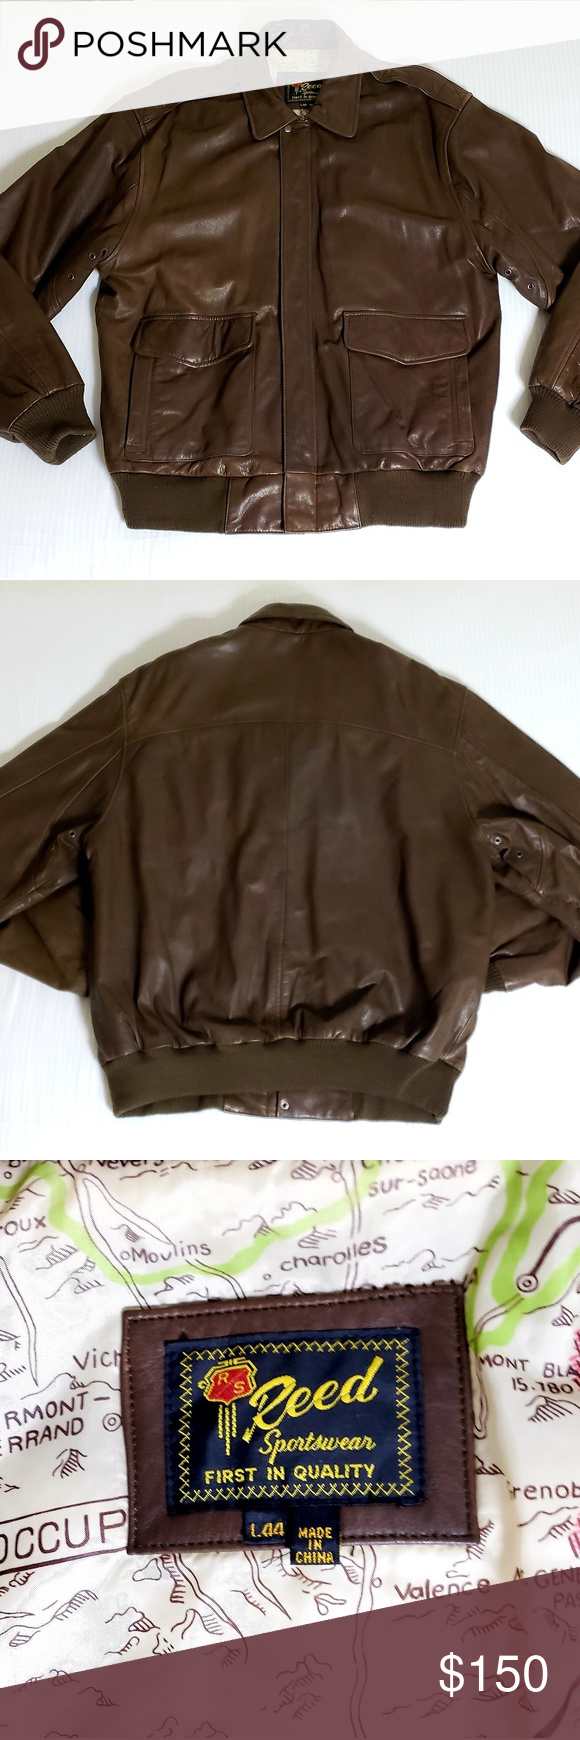 Vintage Reed Sportswear Leather Bomber Jacket L 44 Excellent Condition Very Well Taken Care Of See Photos Leather Bomber Jacket Clothes Design Leather Bomber [ 1740 x 580 Pixel ]